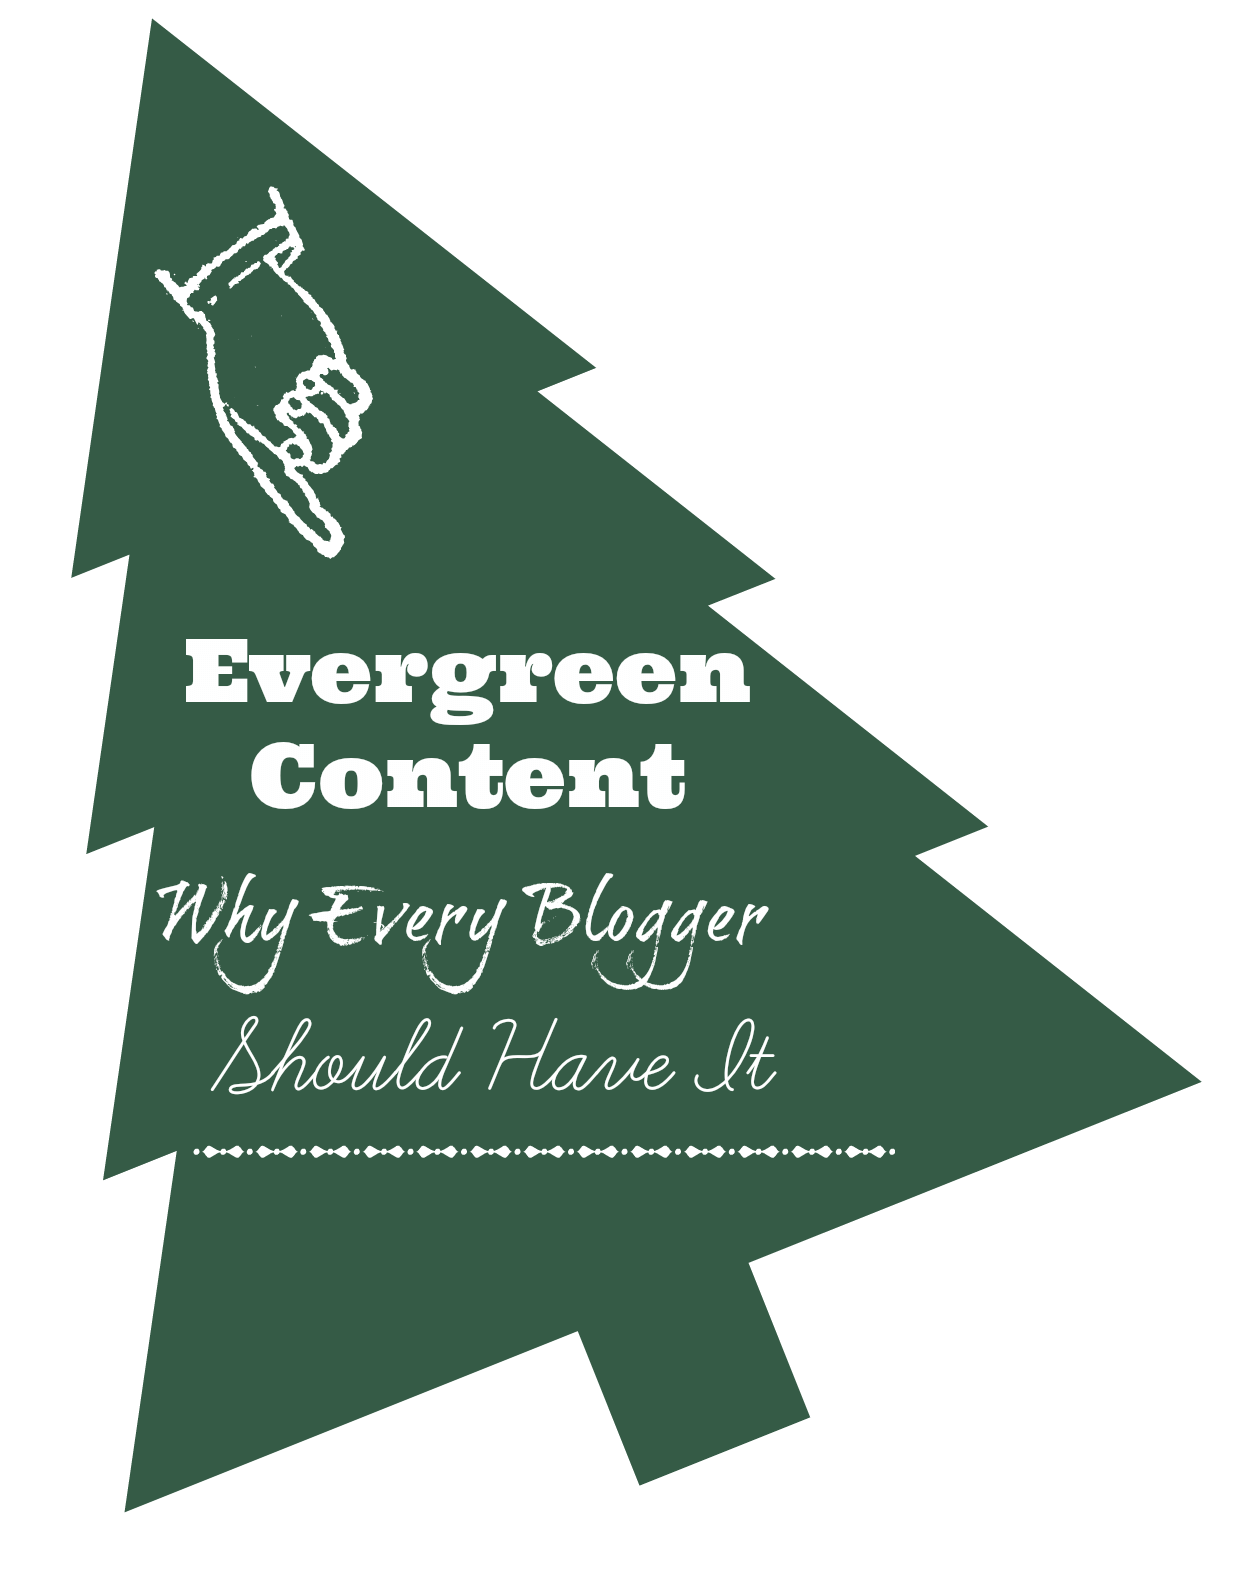 Evergreen Content | NewMamaDiaries.com